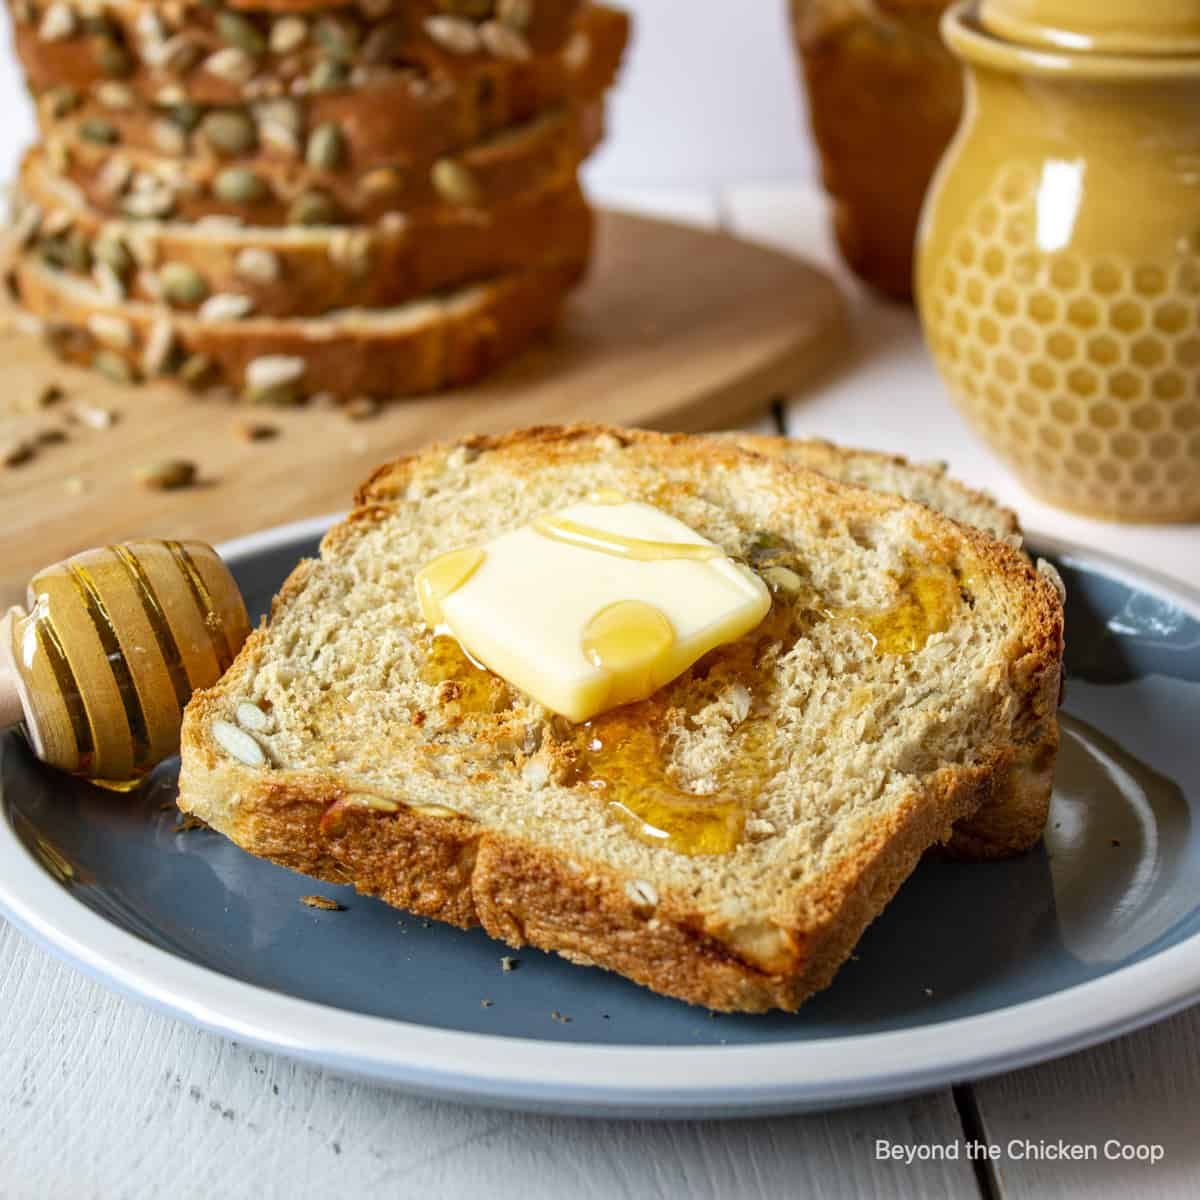 A toasted piece of bread topped with butter and honey.